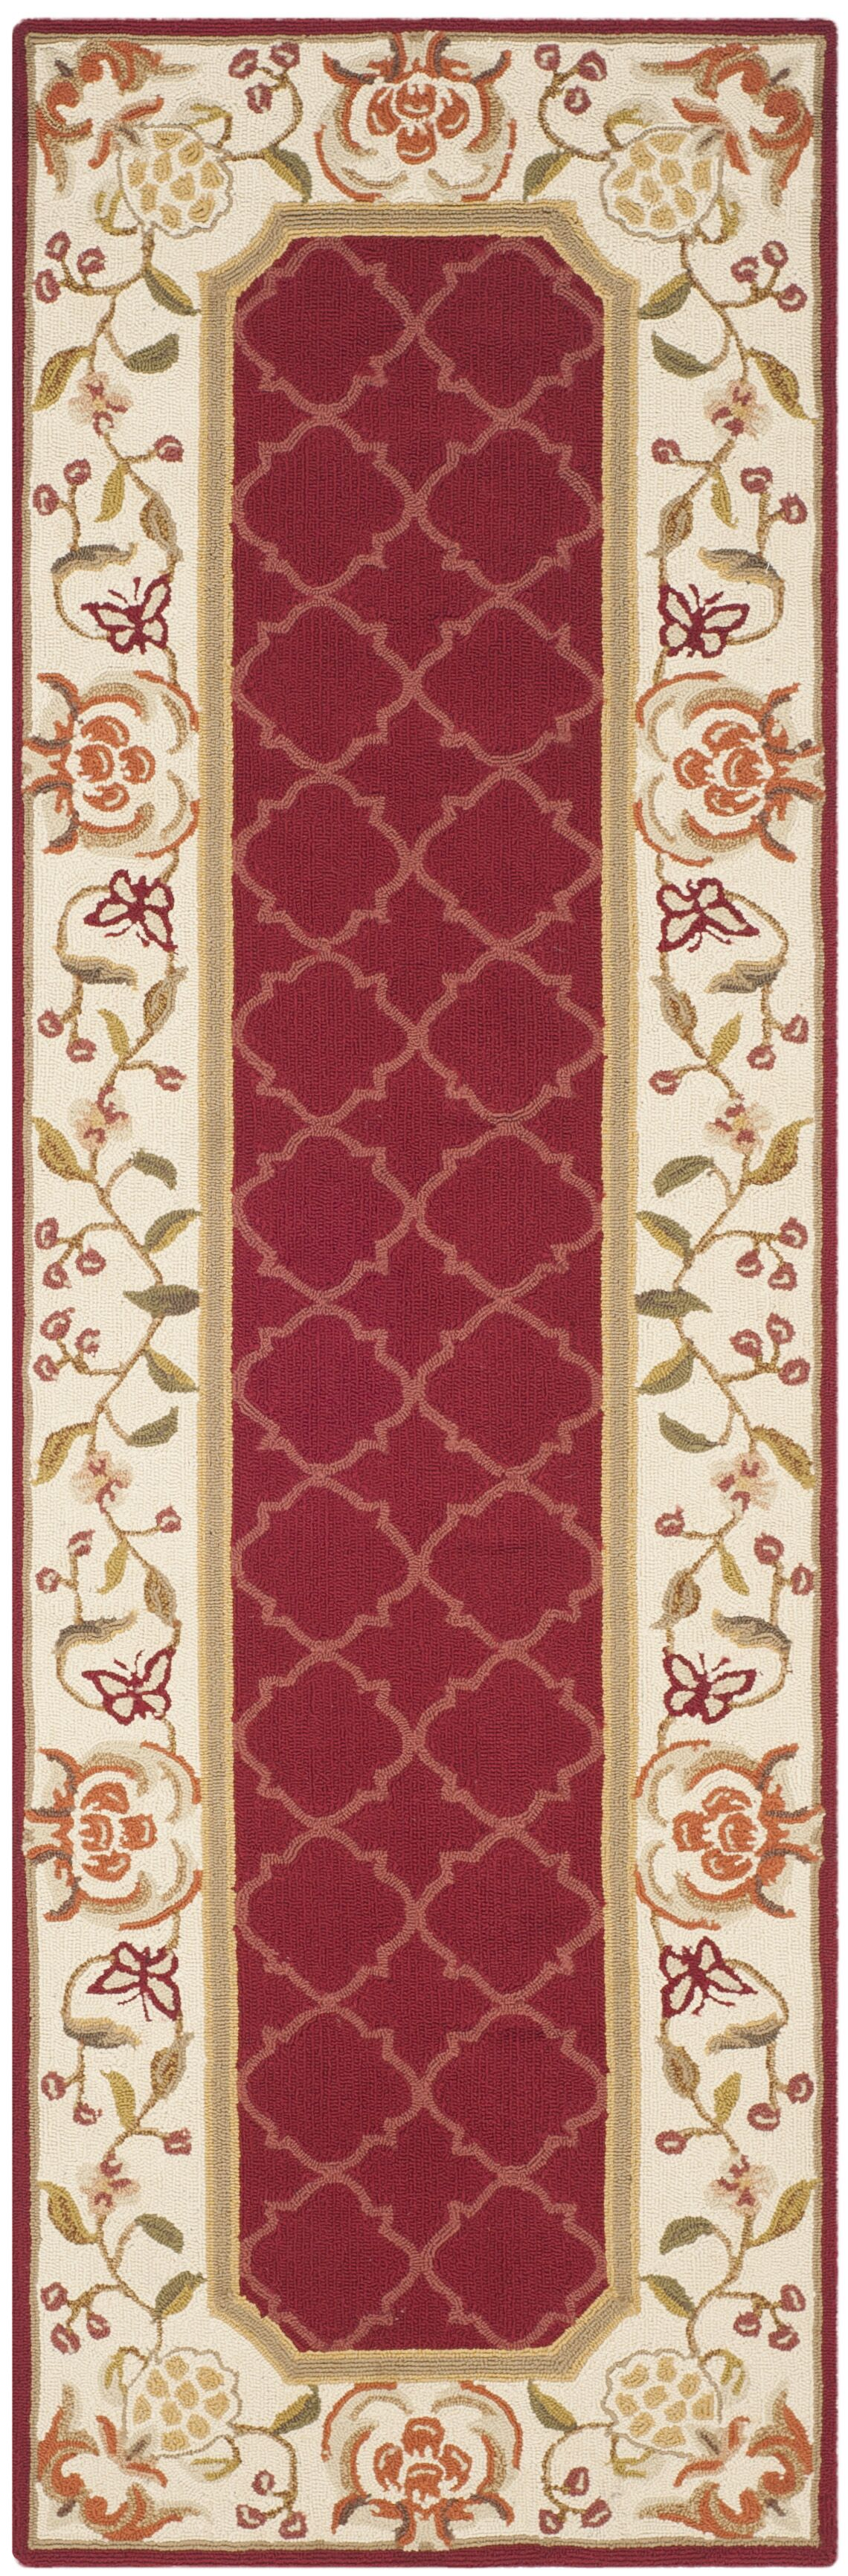 Arends Hand-Hooked Burgundy/Ivory Area Rug Rug Size: Runner 2'6